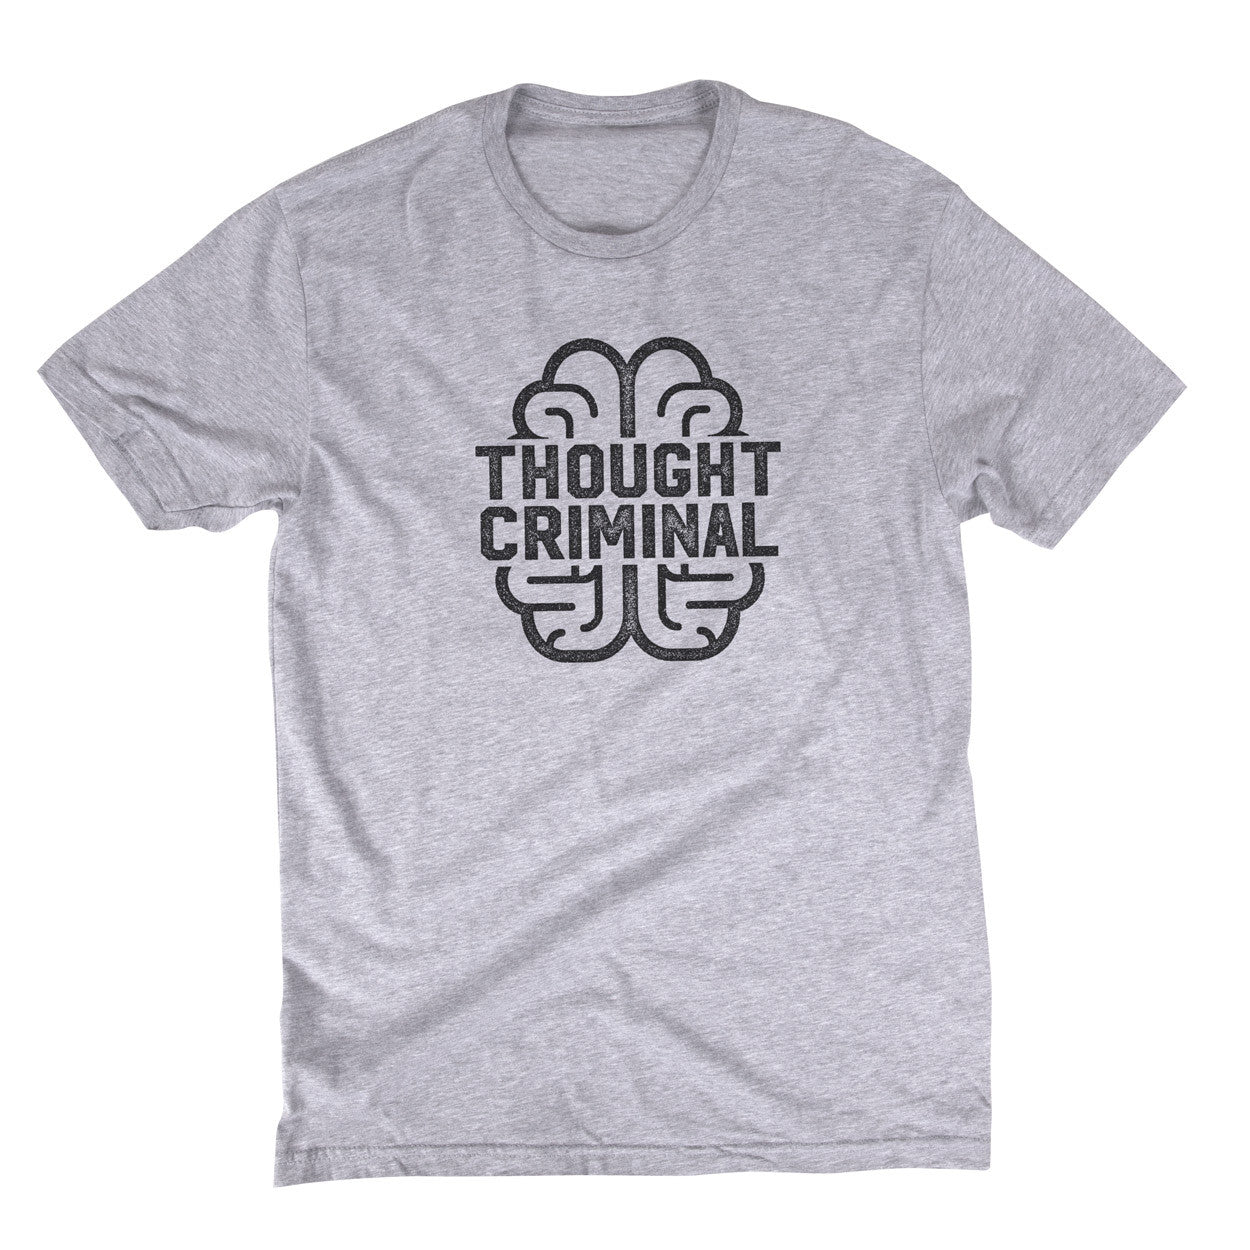 94c39b71c ... Thought Criminal By Liberty Maniacs in Athletic Grey